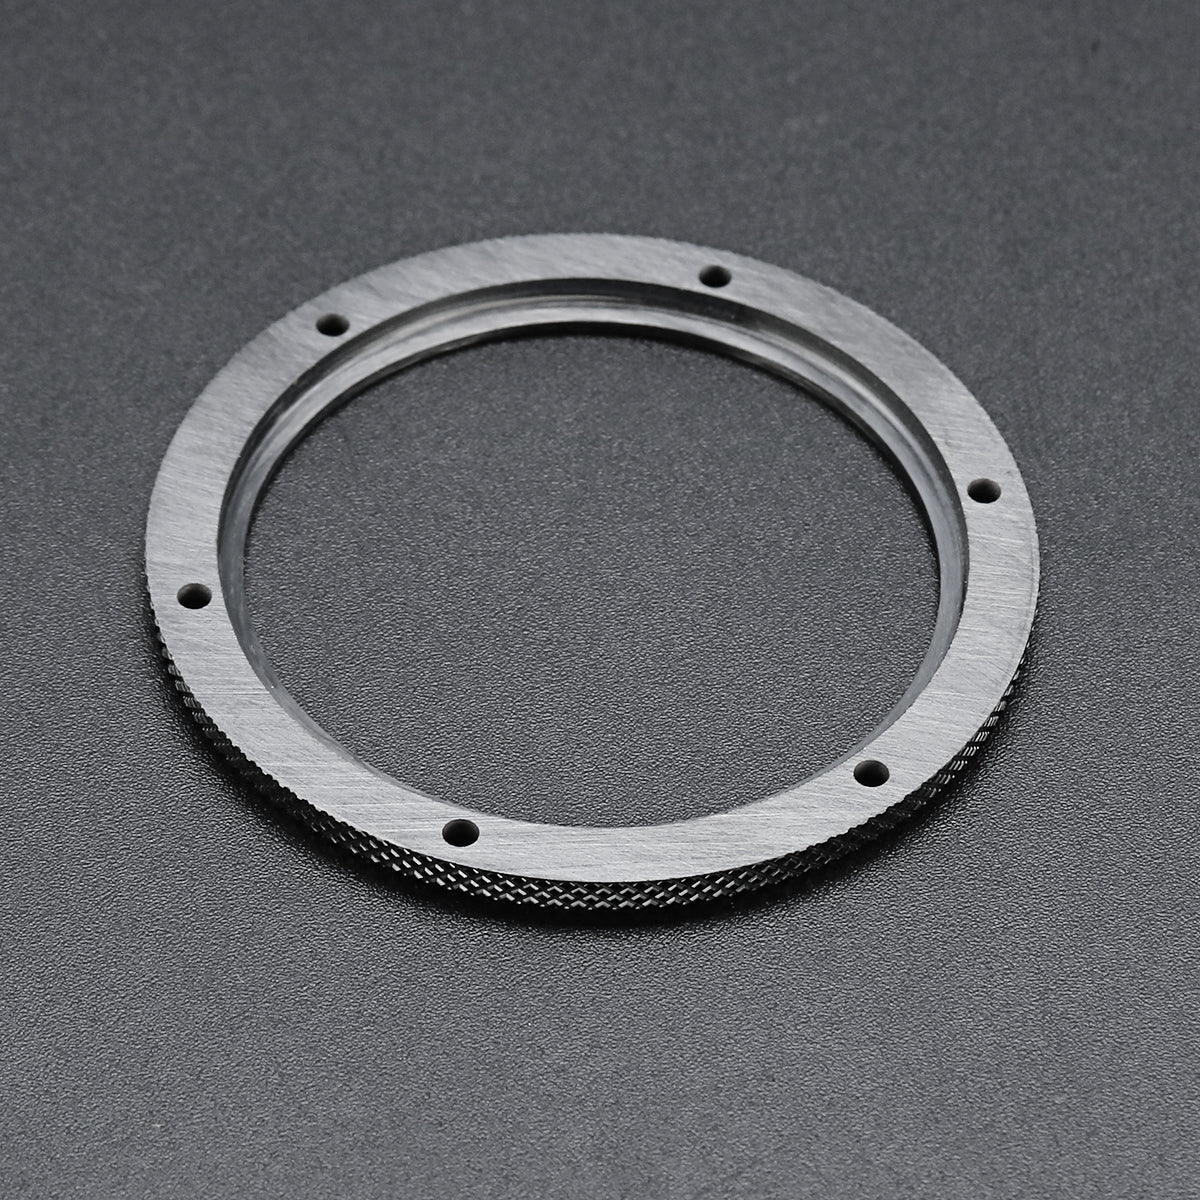 Watch Cover Watch Ceramic Bezel Insert For Hublot 44-45mm